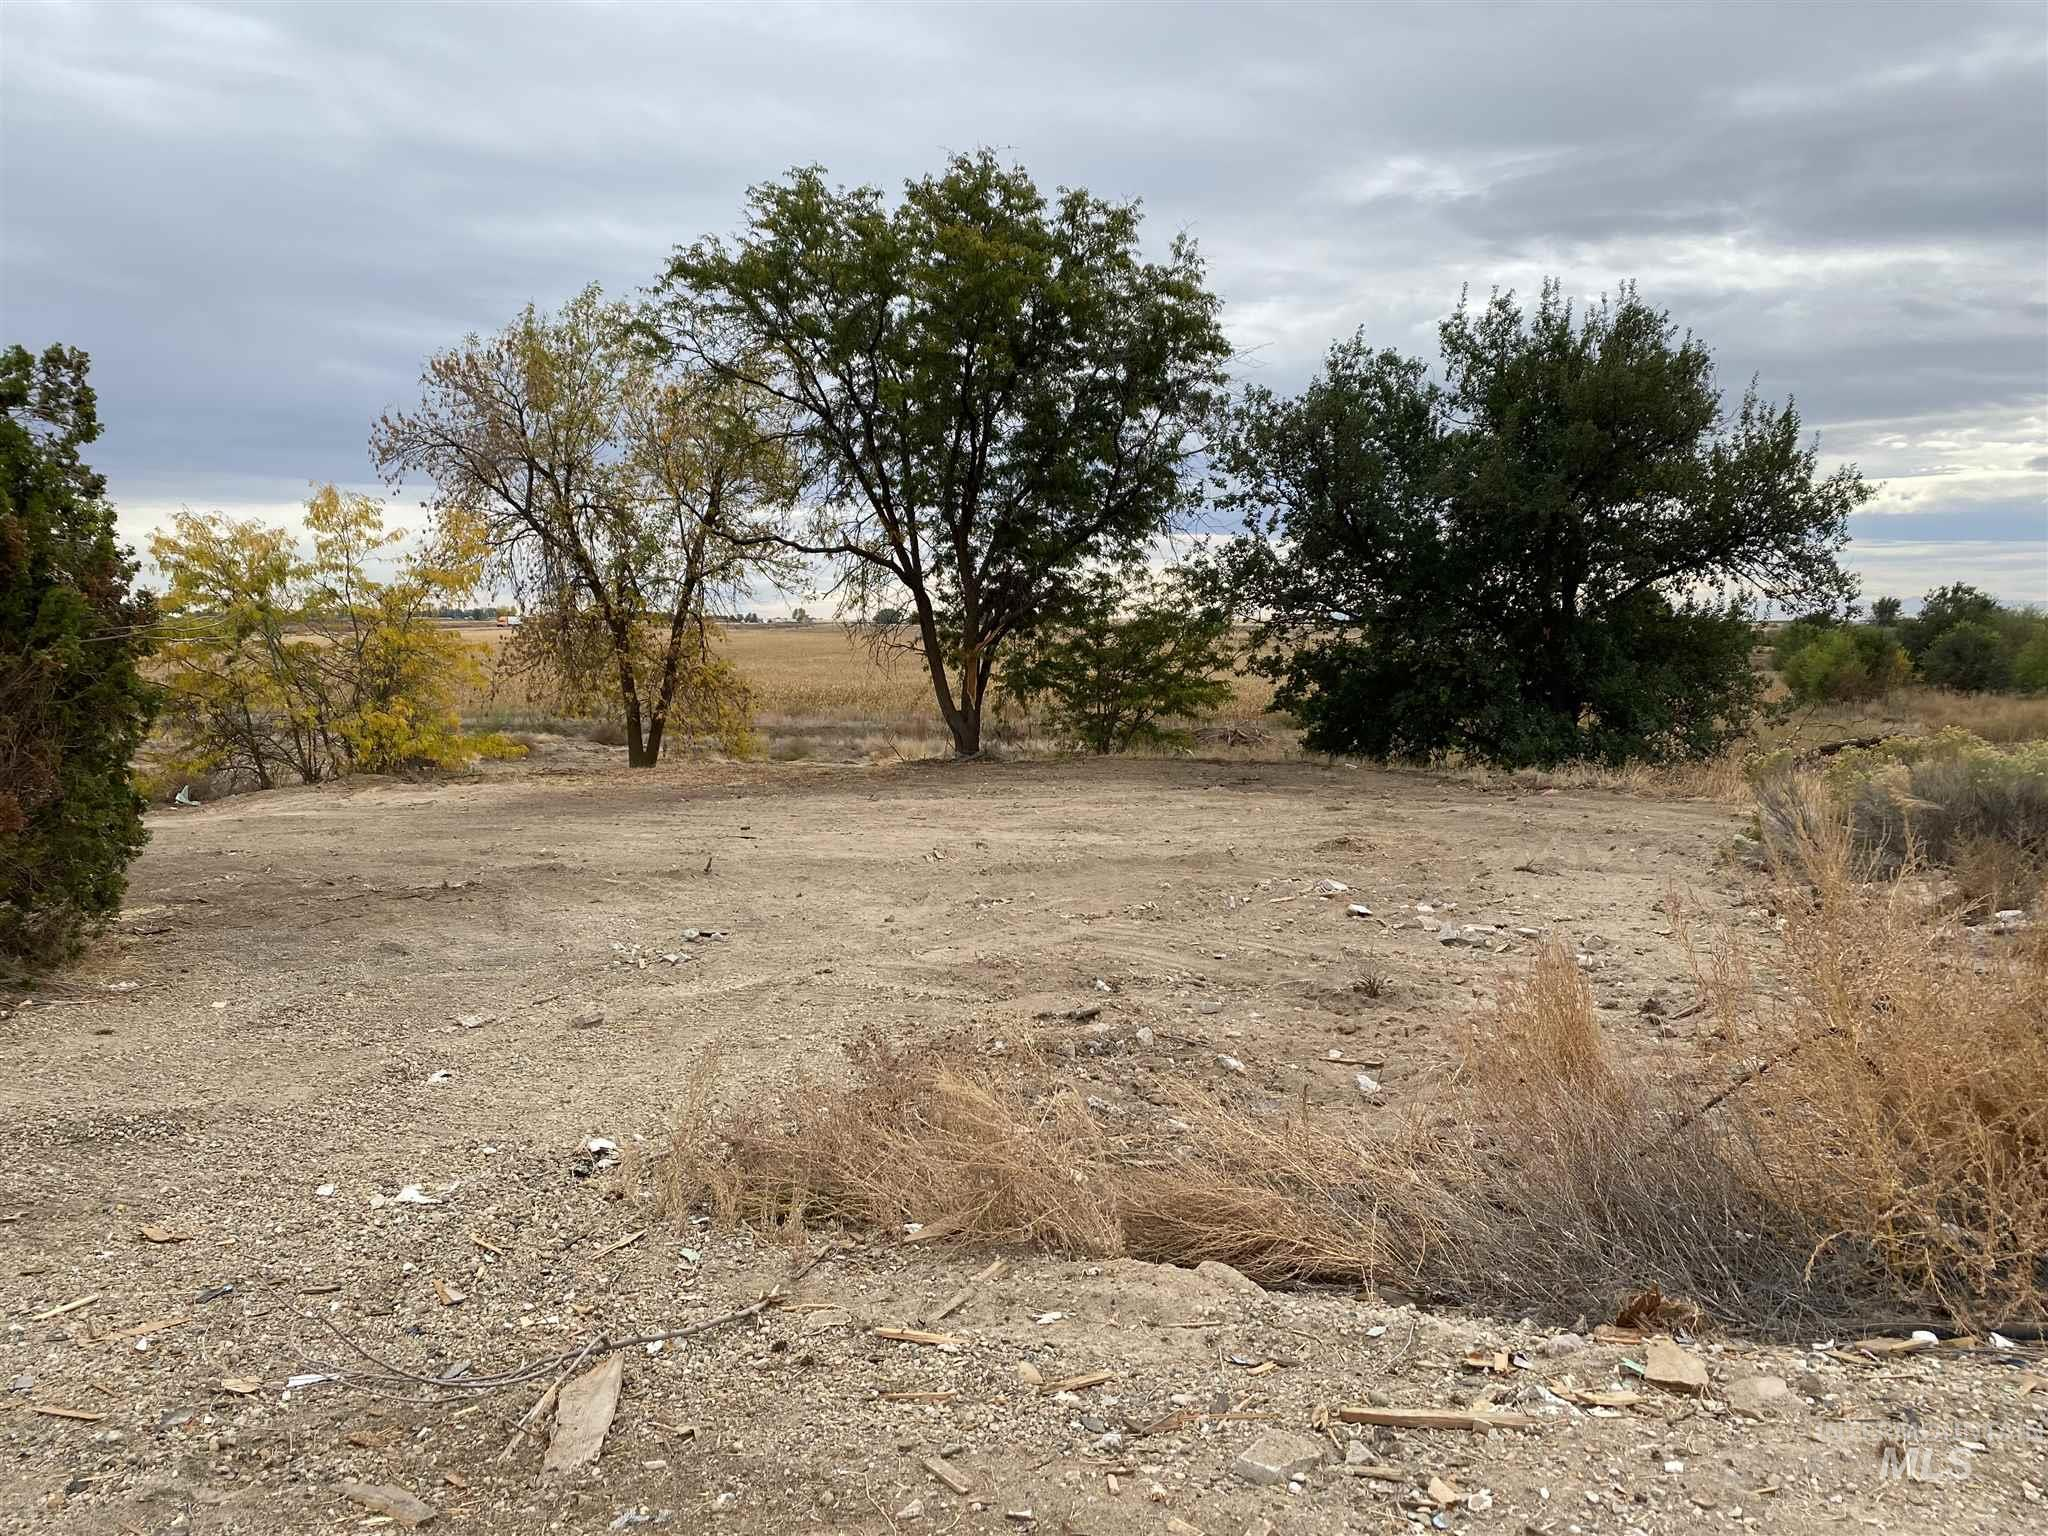 TBD Goodson Rd, Caldwell, Idaho 83607, Land For Sale, Price $120,000, 98784321